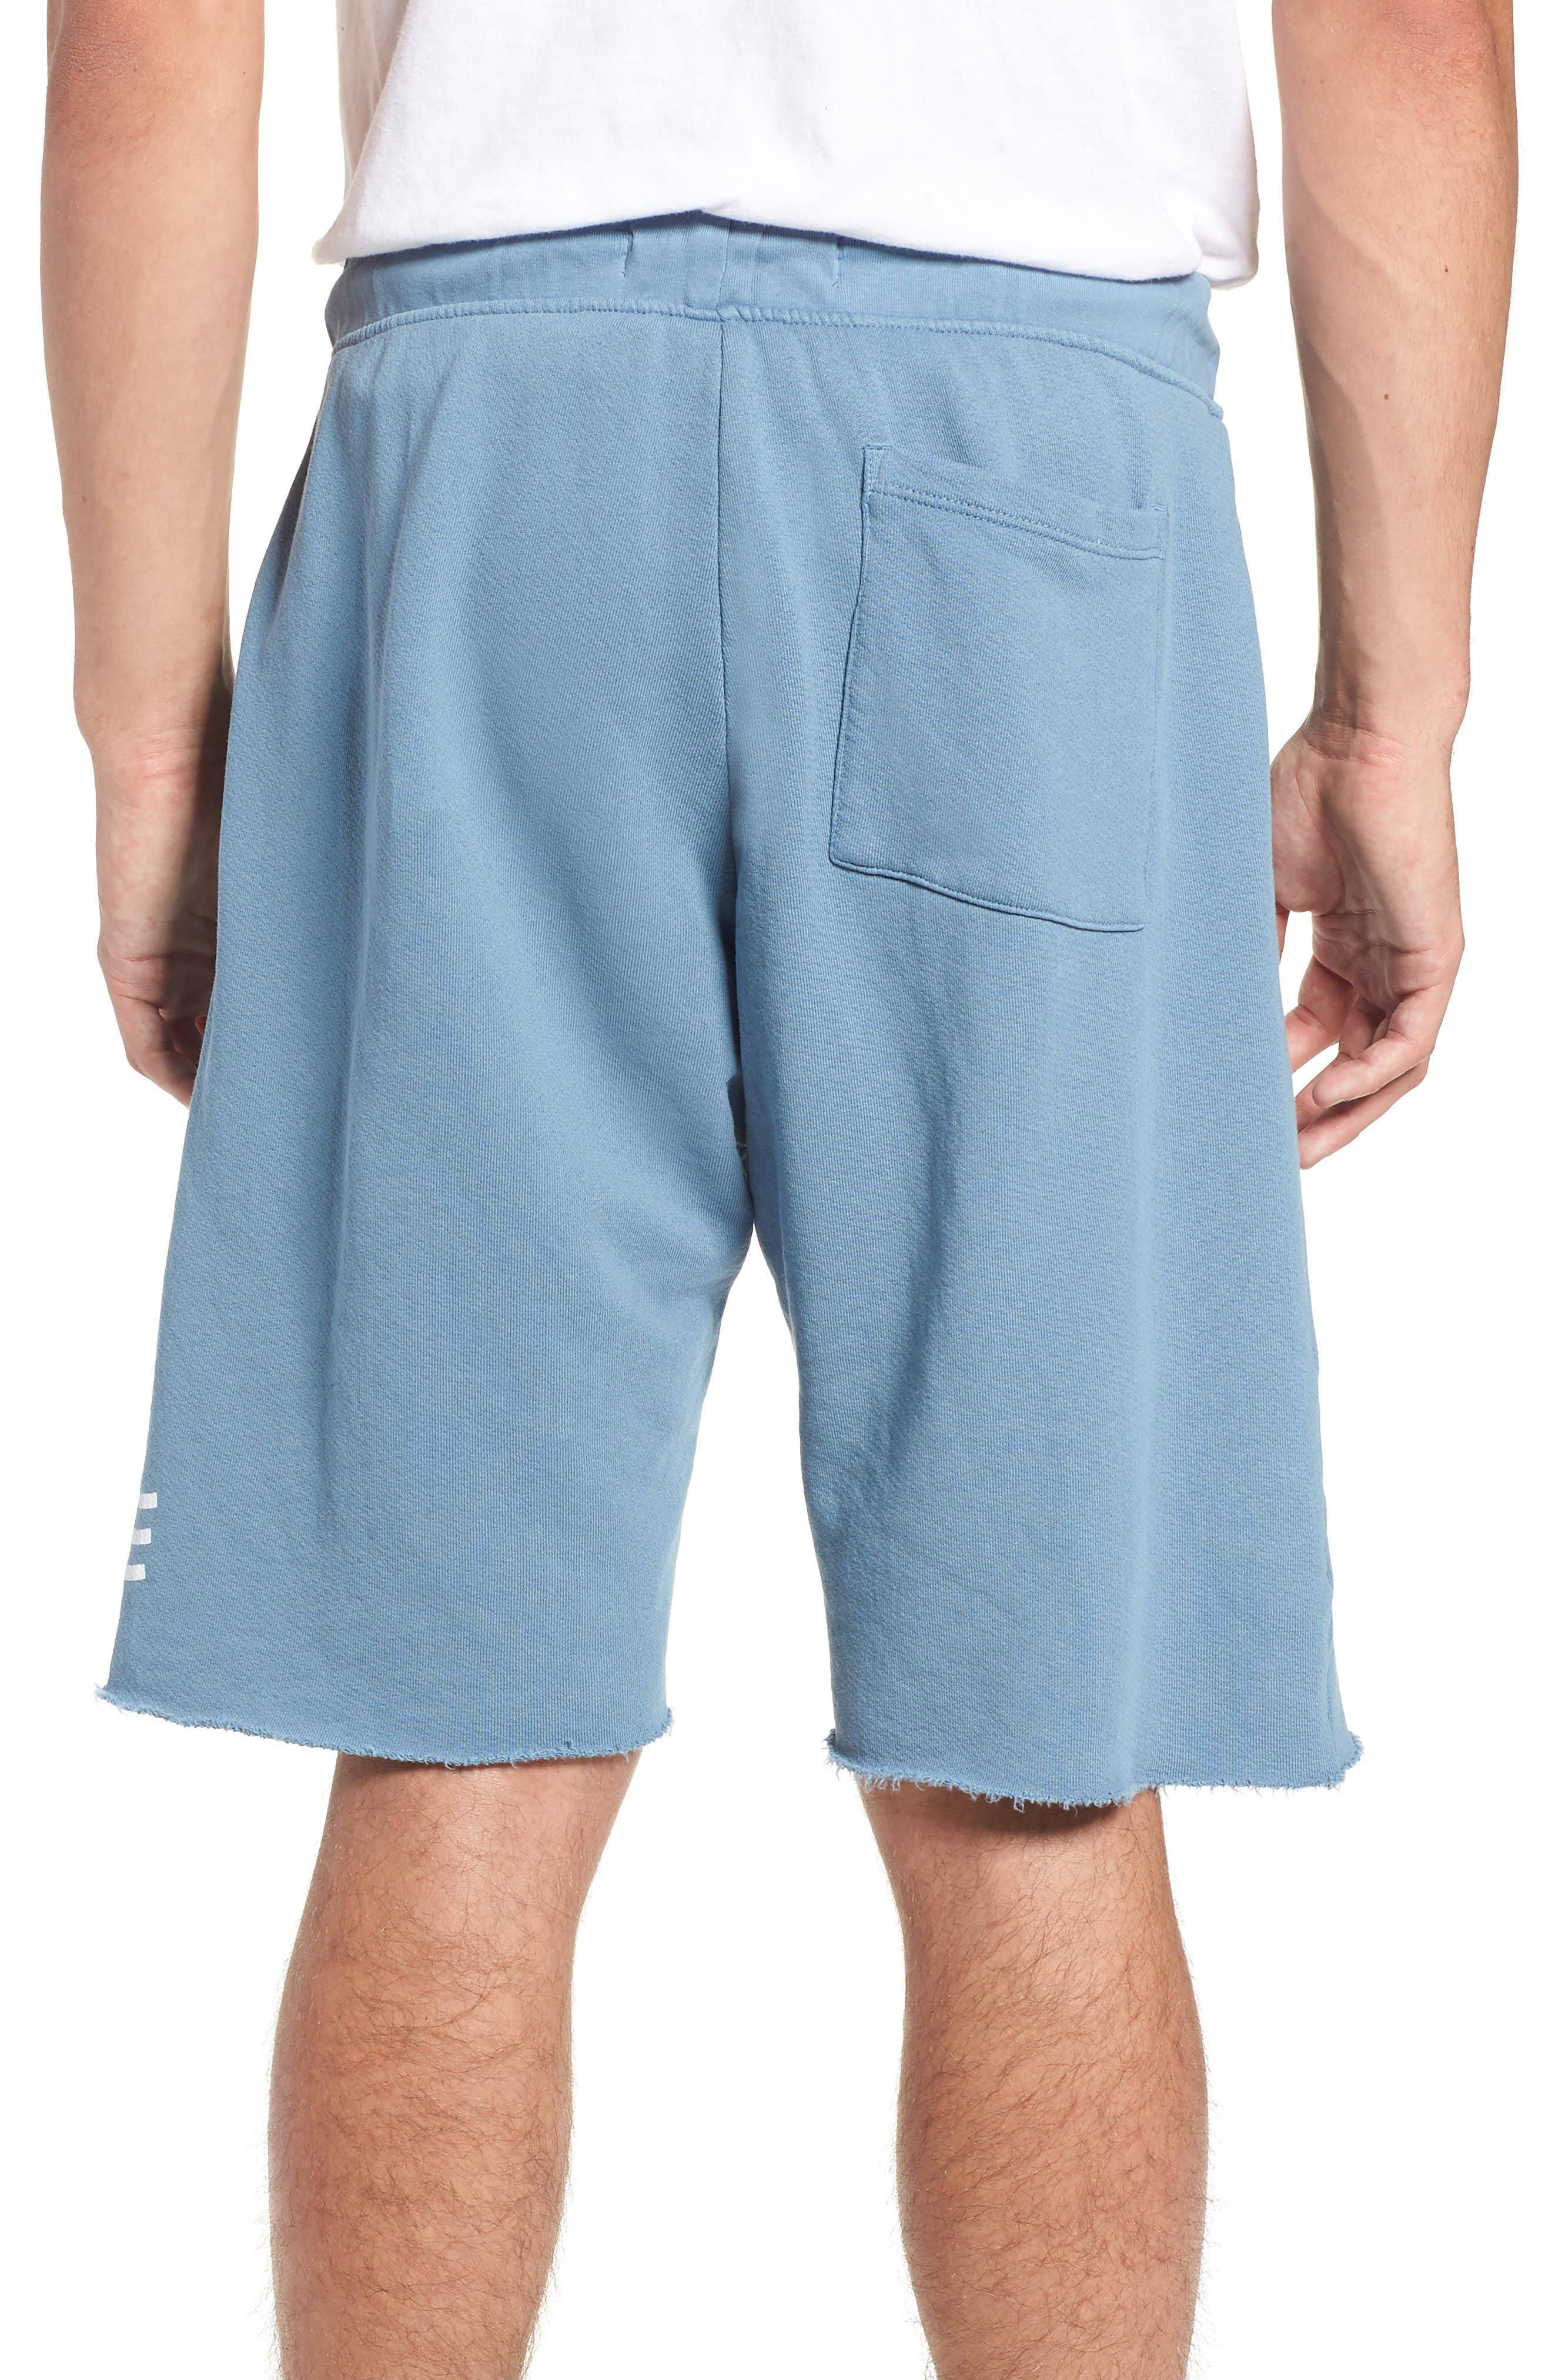 Essential Knit Shorts,                             Alternate thumbnail 2, color,                             400